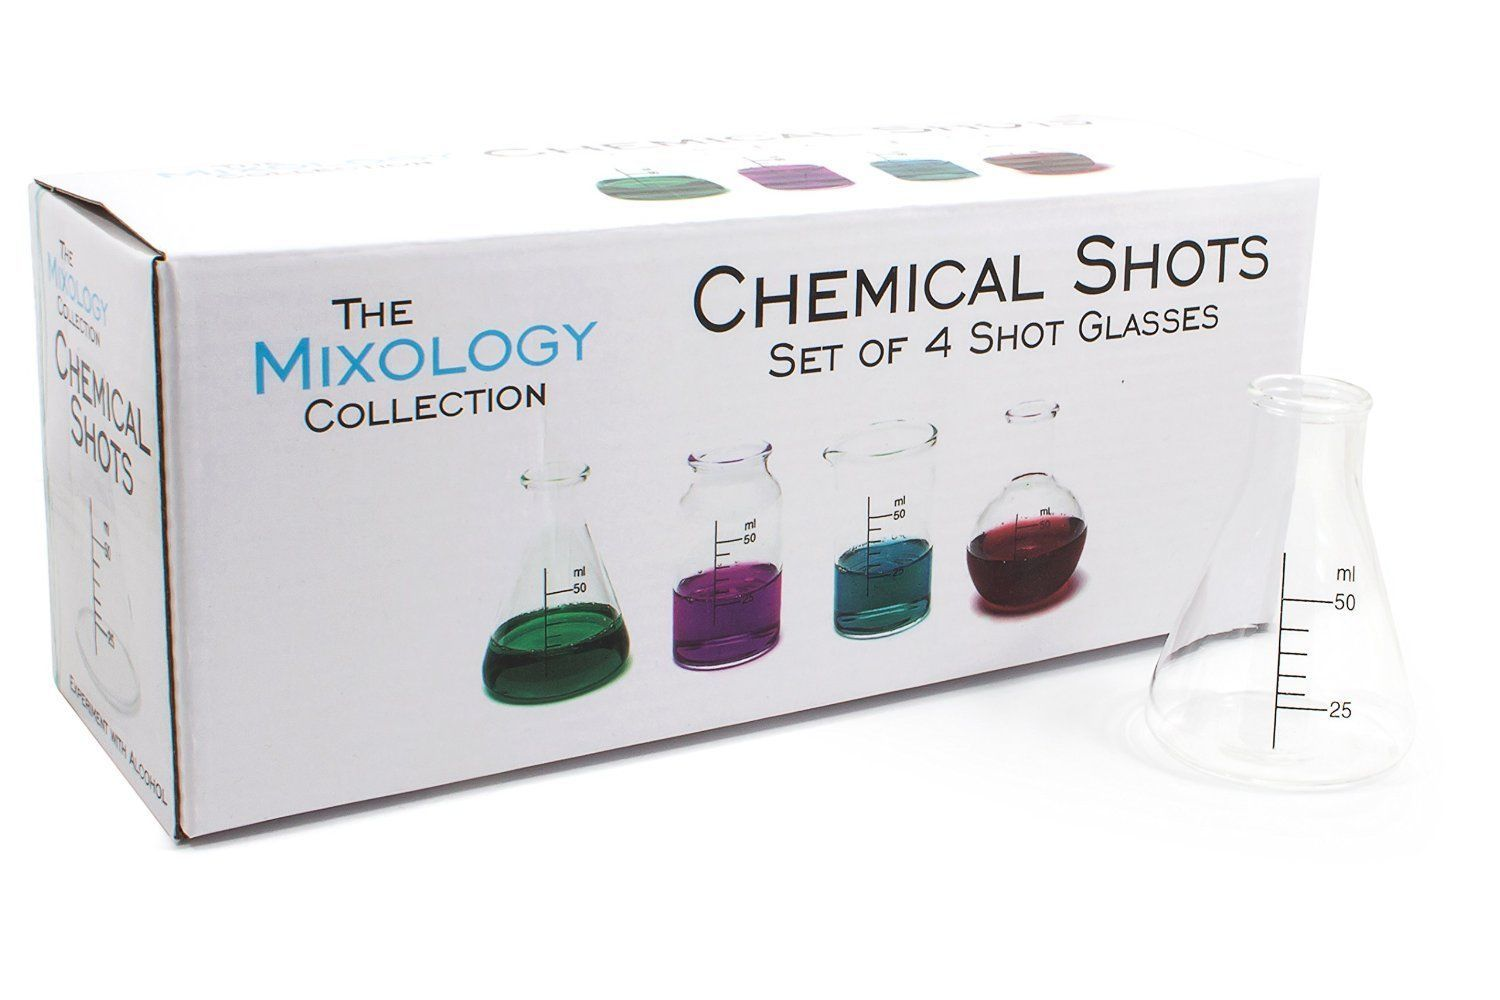 Mixology Chemical Shot Glasses - 50ml (Set of 4) image